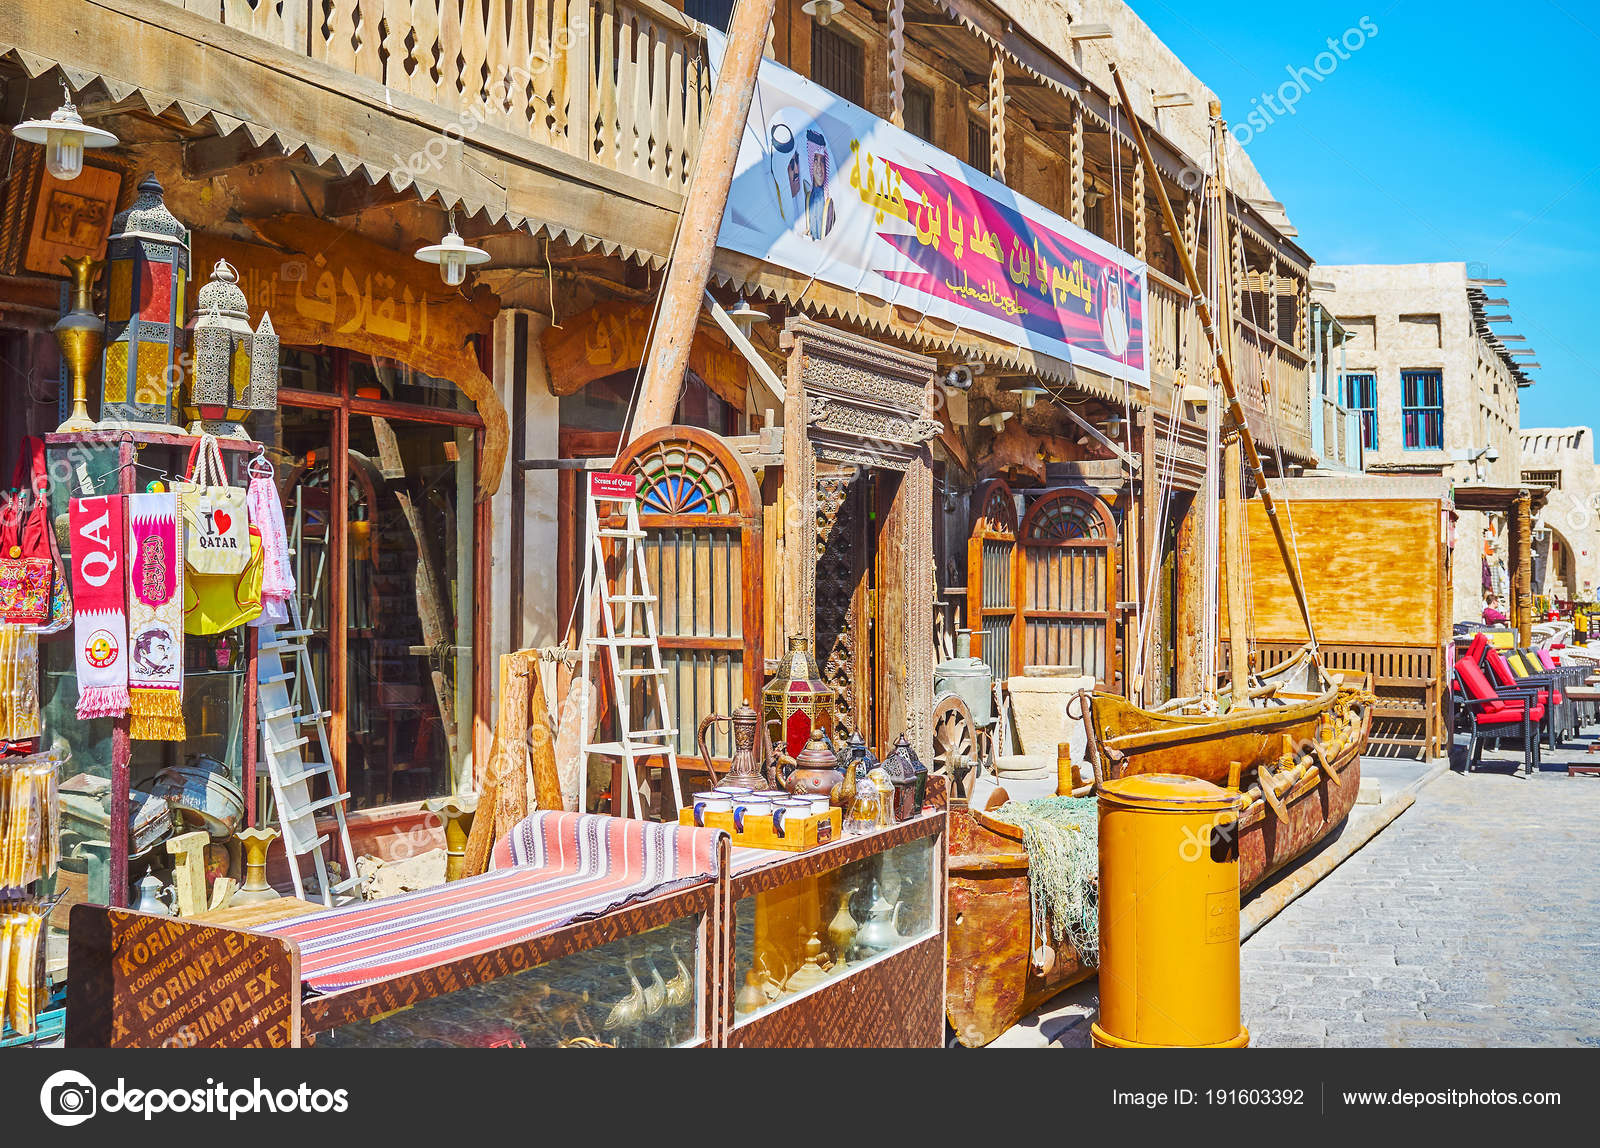 Antique store in Souq Waqif, Doha, Qatar – Stock Editorial Photo